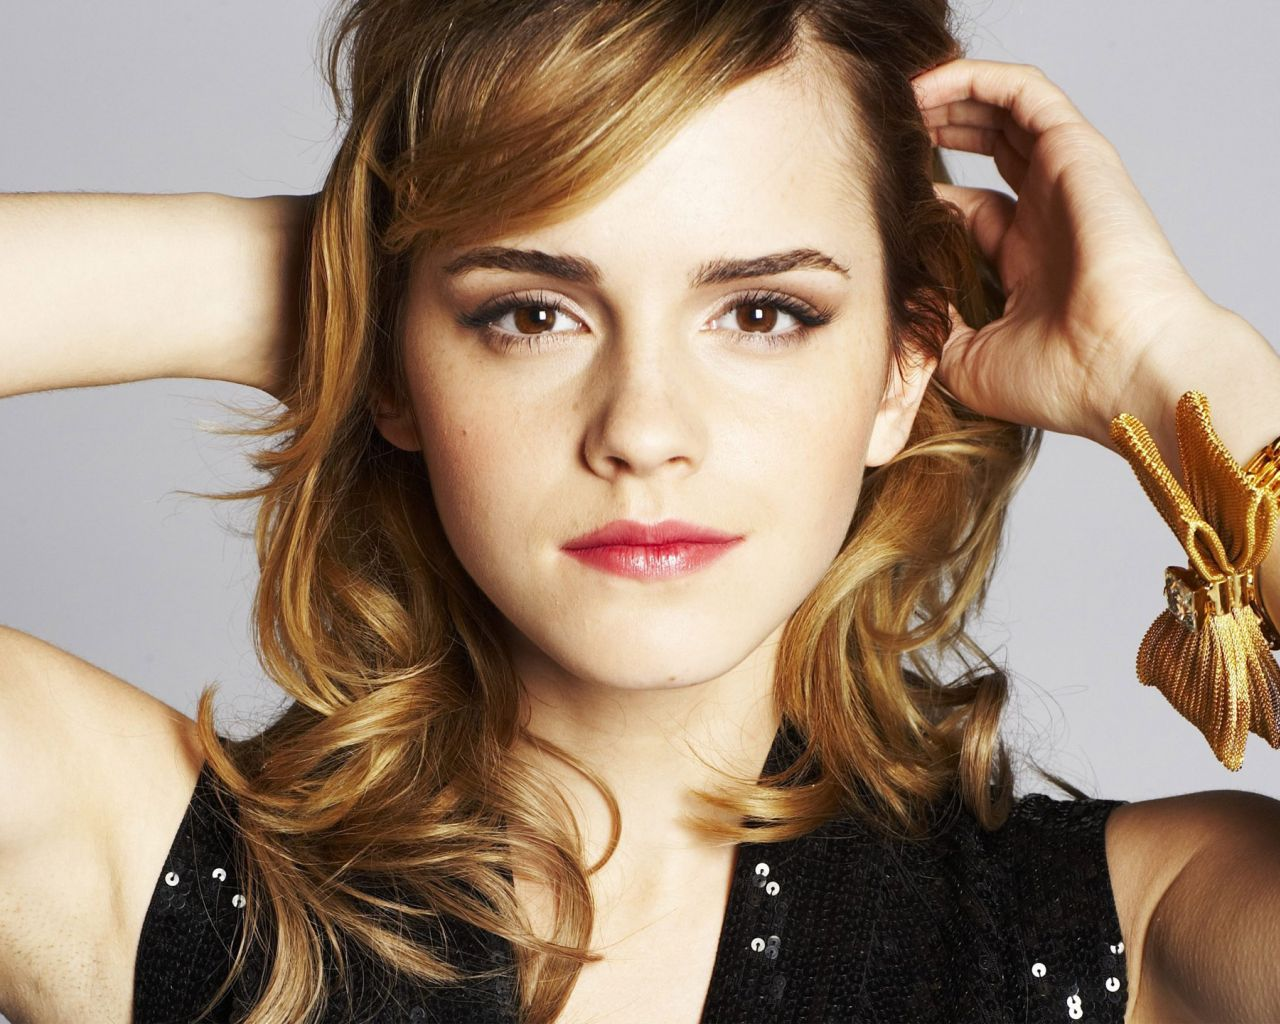 Emma Watson Private Parts Images | Crazy Gallery